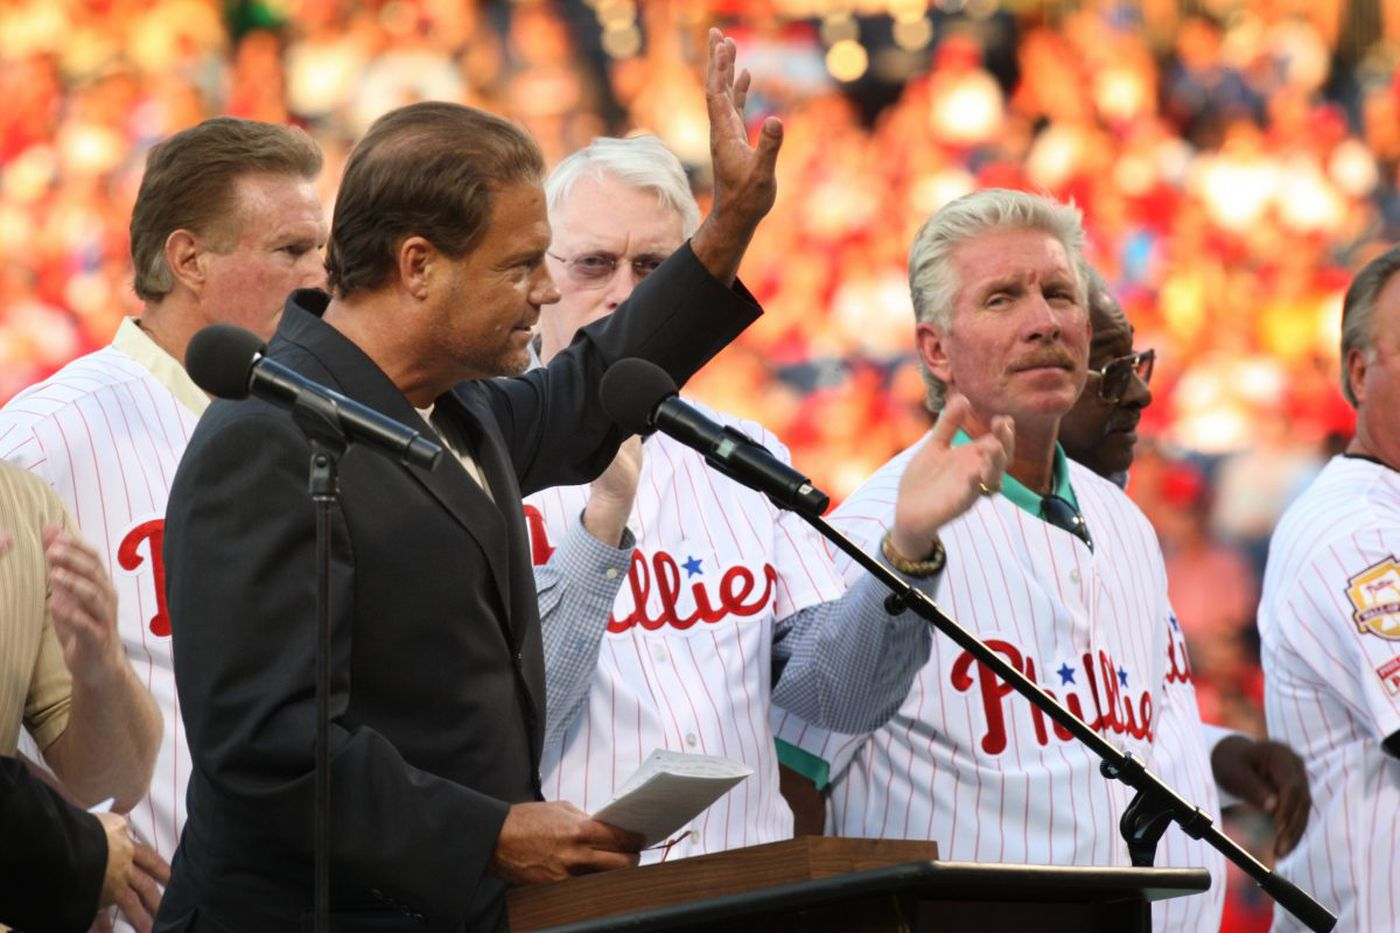 Former Phillies catcher Darren 'Dutch' Daulton dies at 55